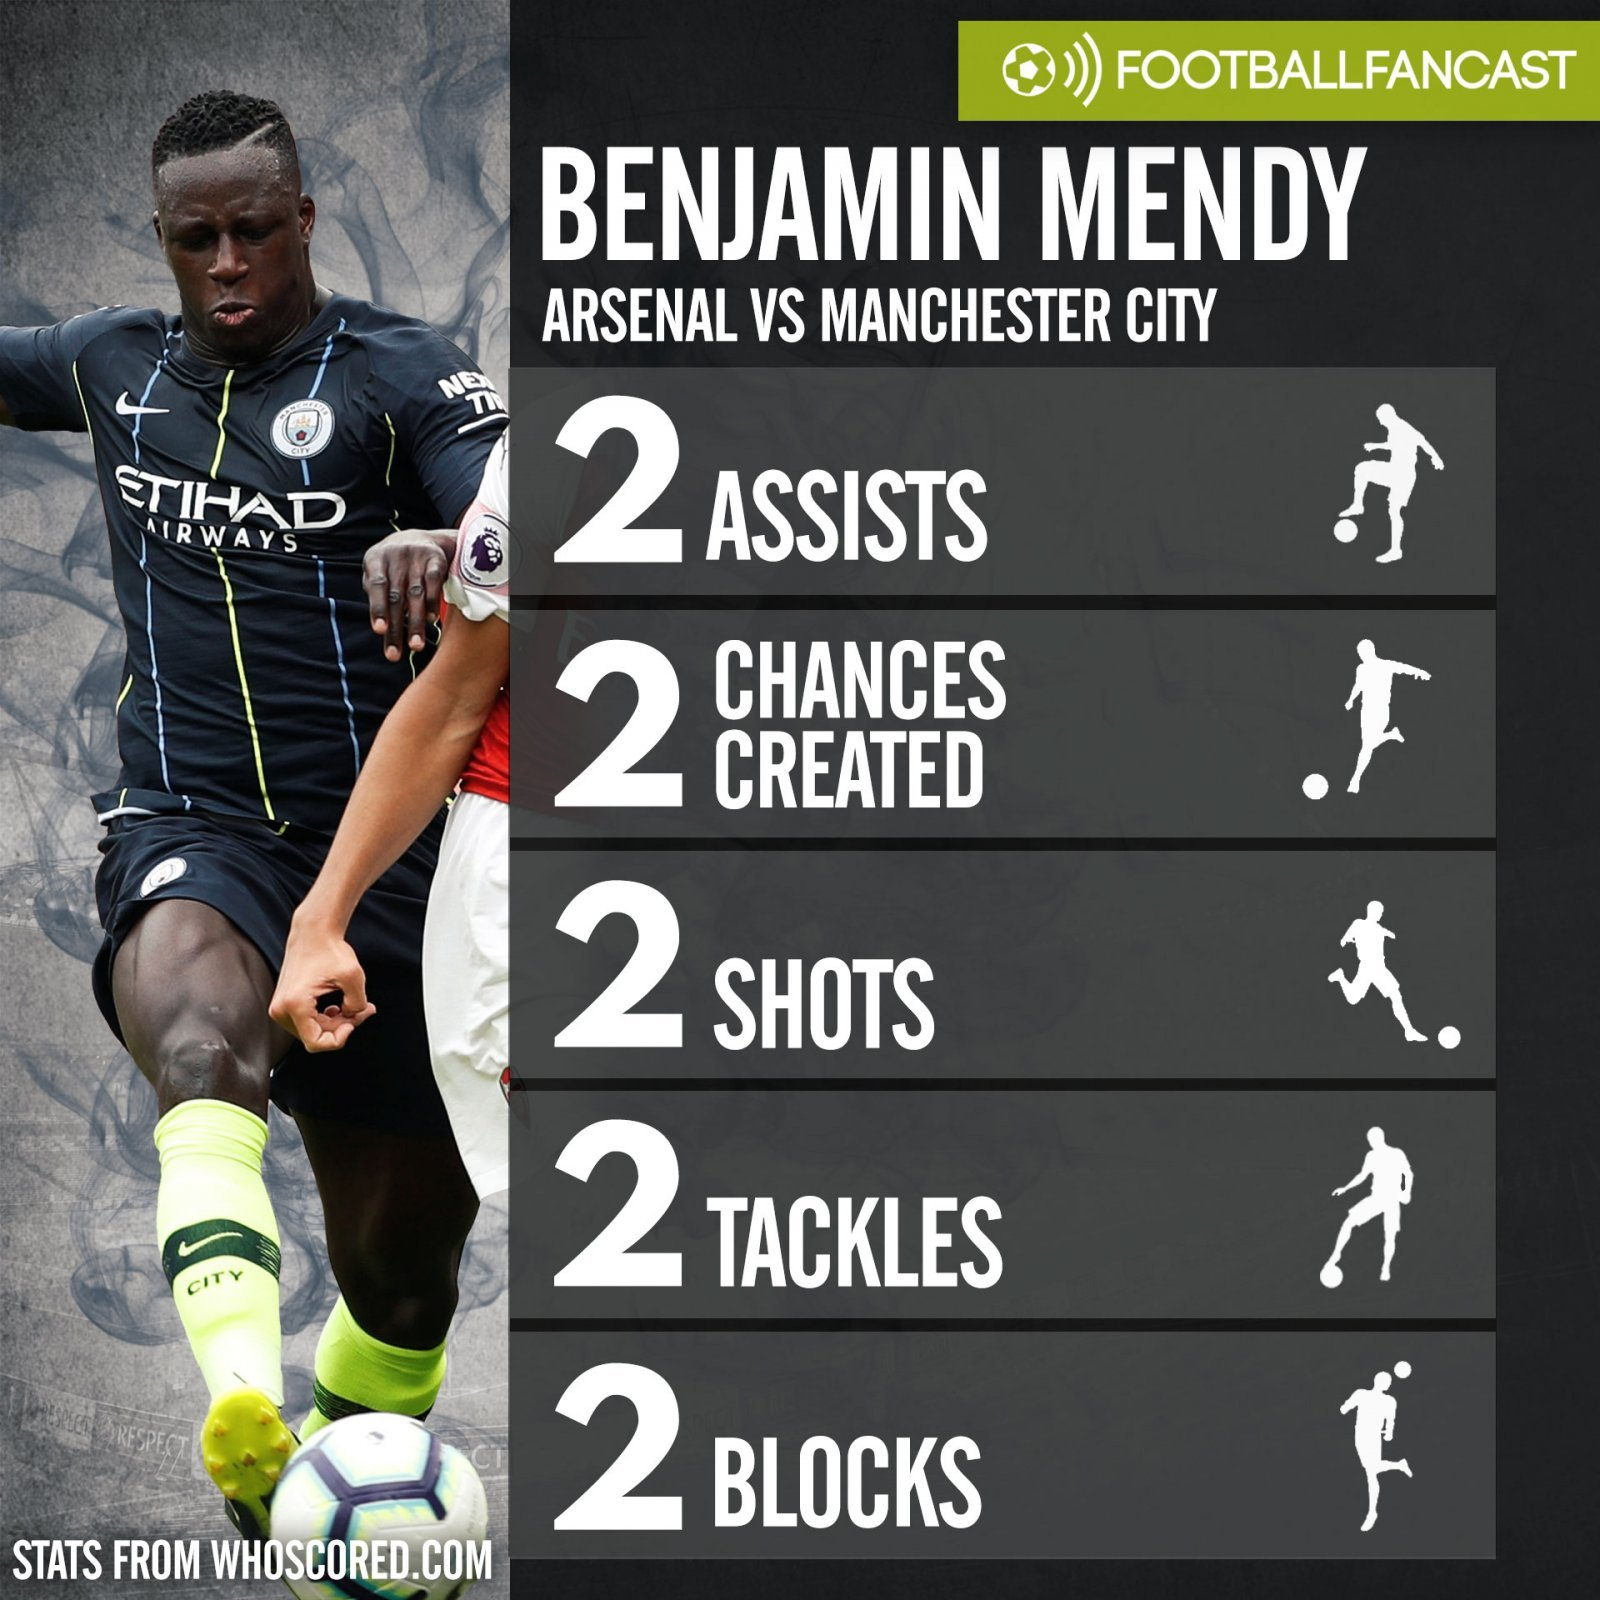 Benjamin Mendy's stats from Man City's 2-0 win over Arsenal